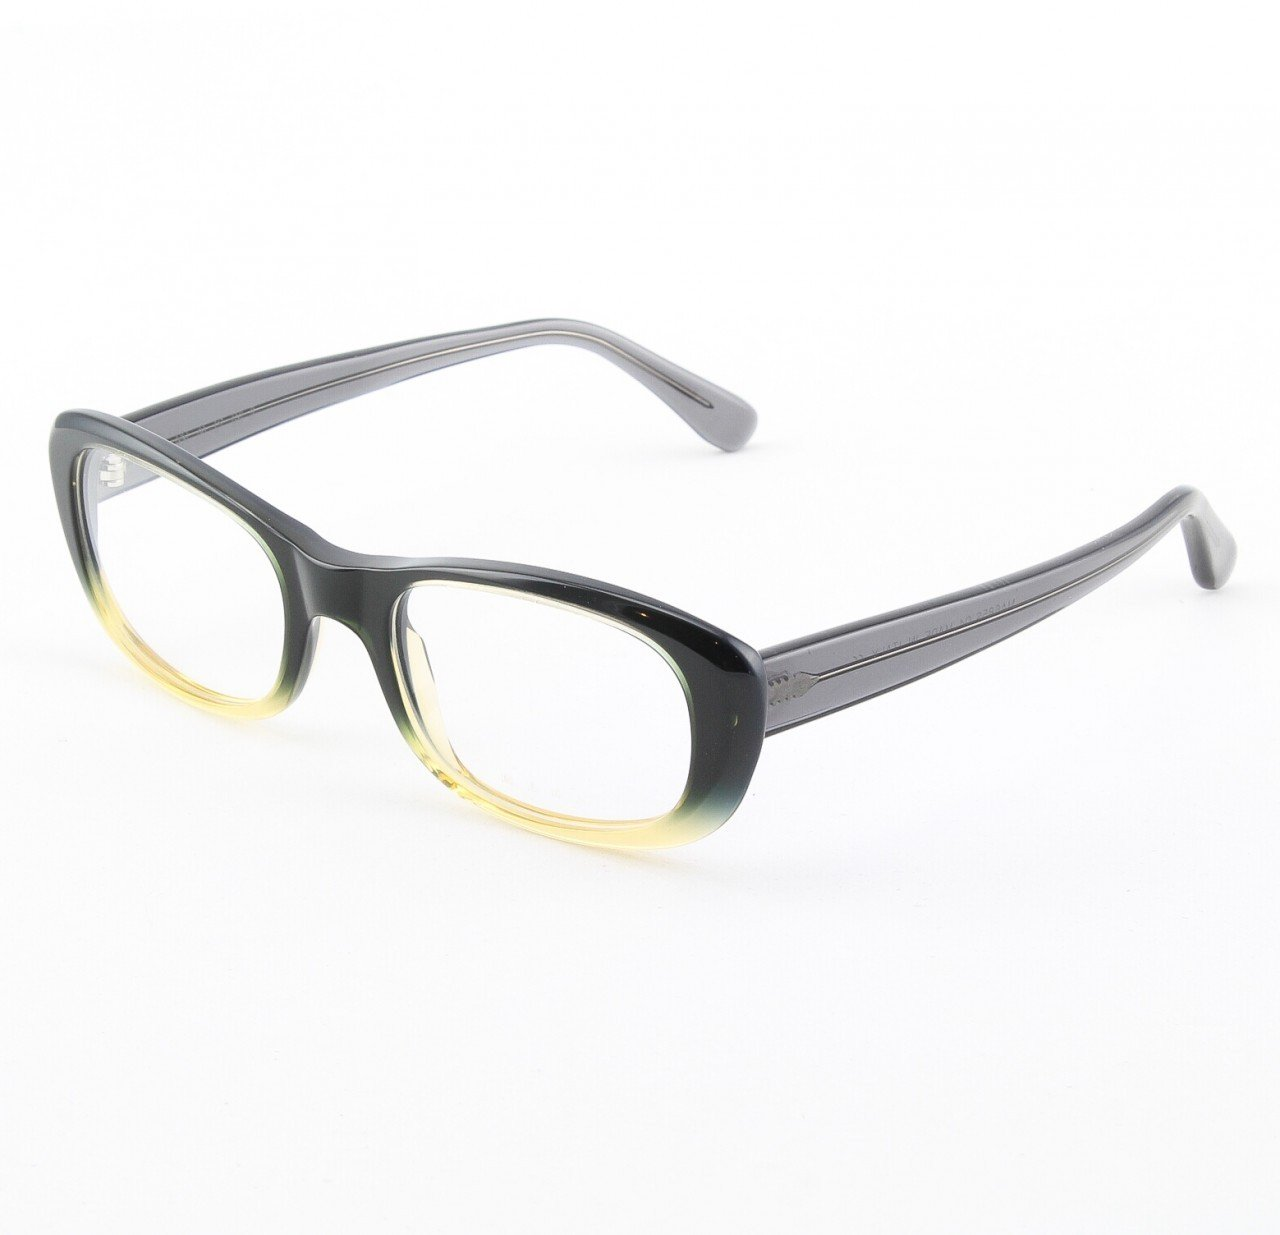 Marni MA685S Eyeglasses Col. 04 Midnight Navy Graduation to Light Yellow with Clear Lenses